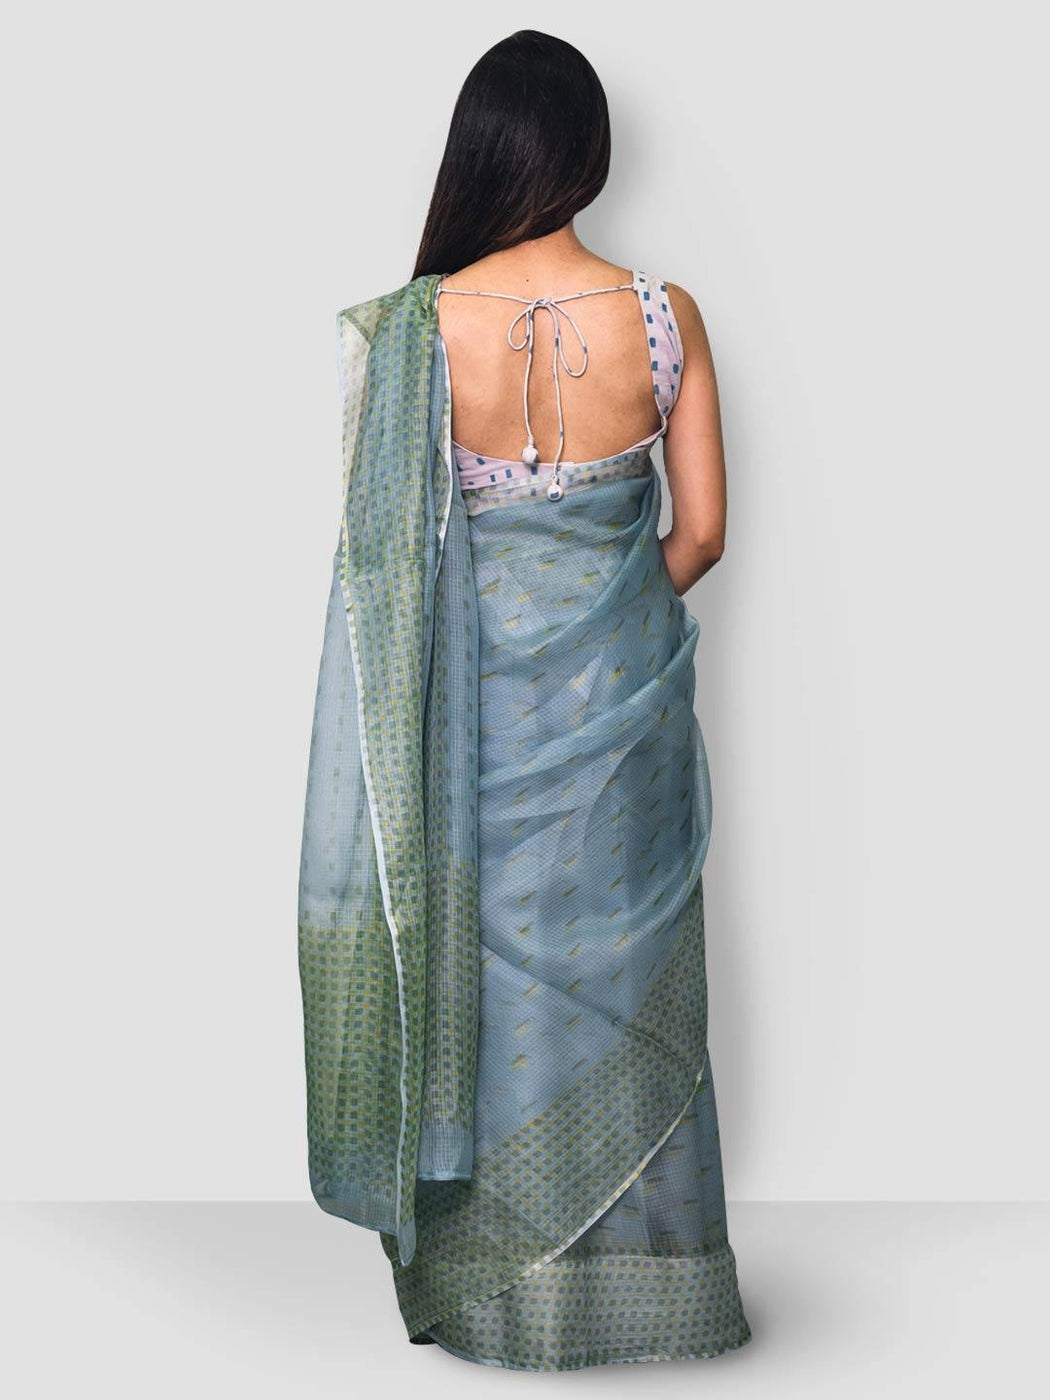 Antheia Kota Silk Saree - Blue, Yellow and Green - Thevasa